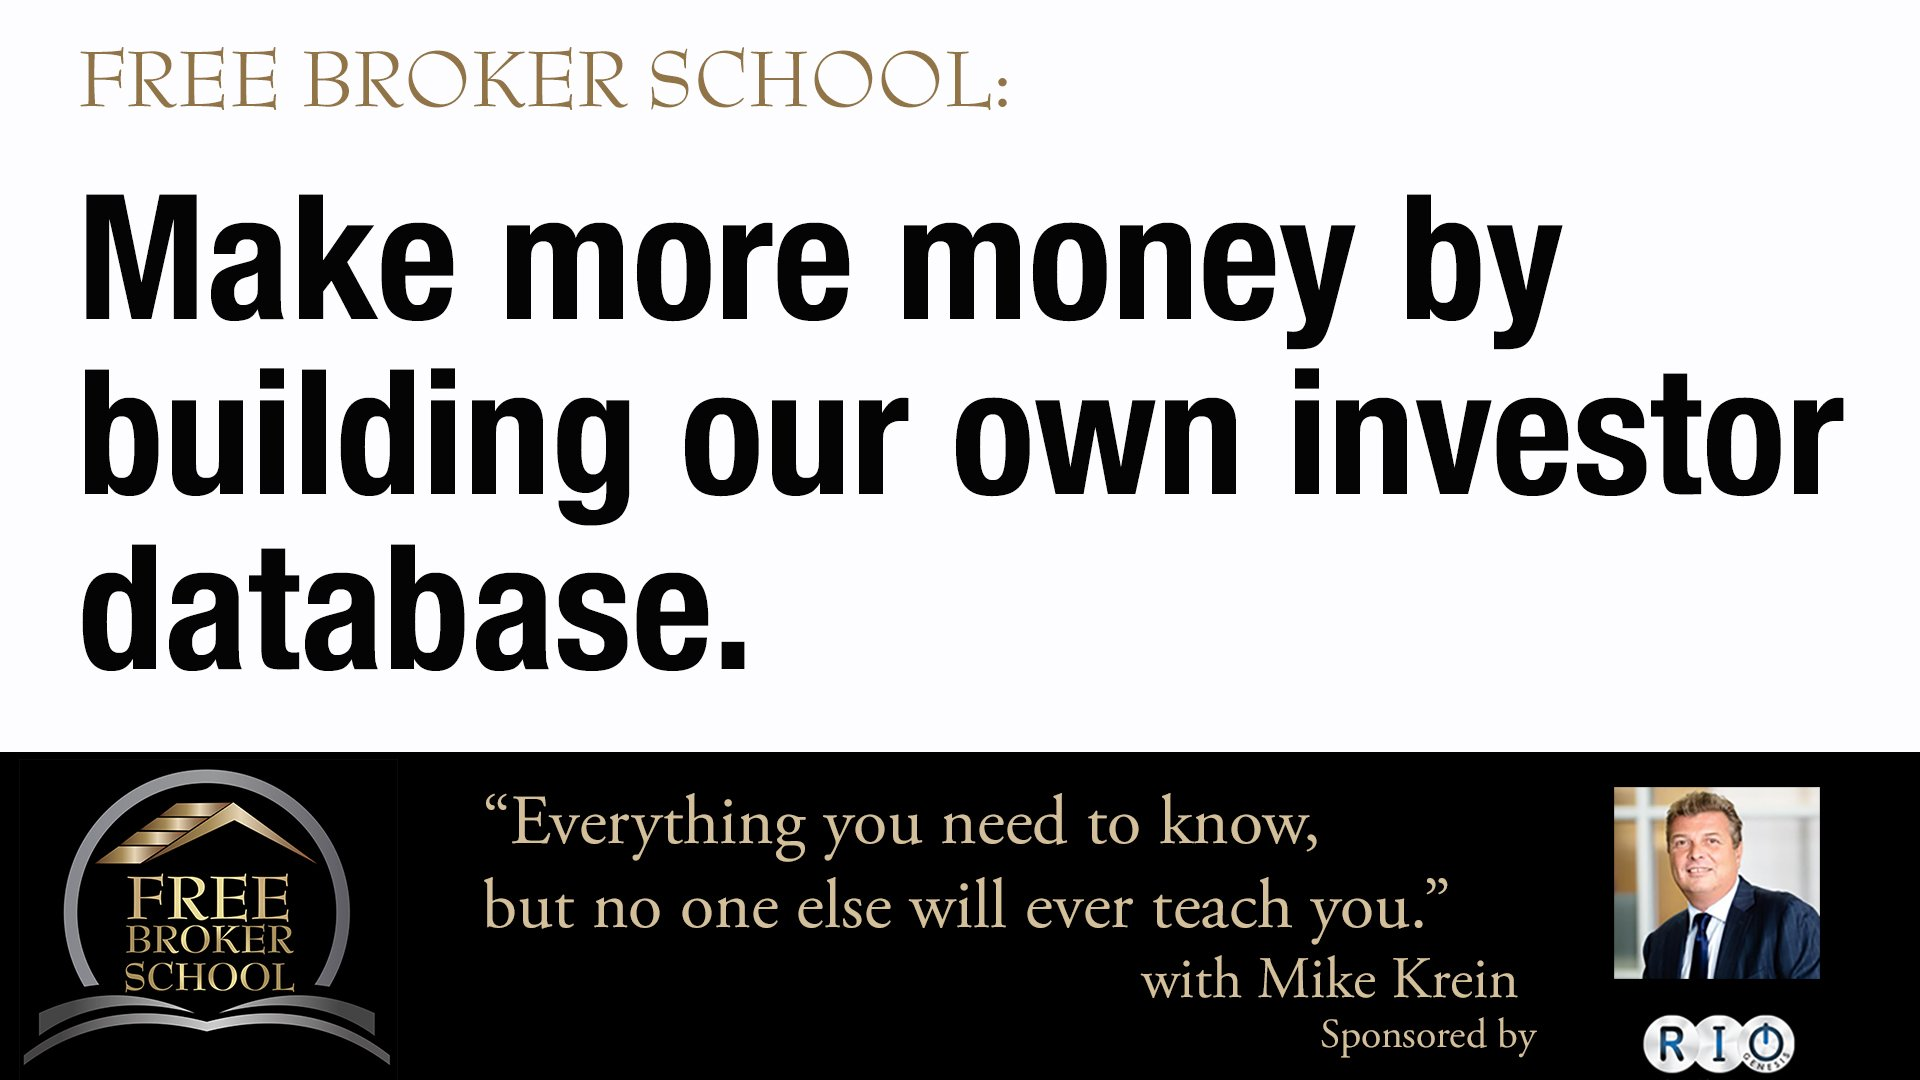 Free Broker School: Make more money by building out own investor database.